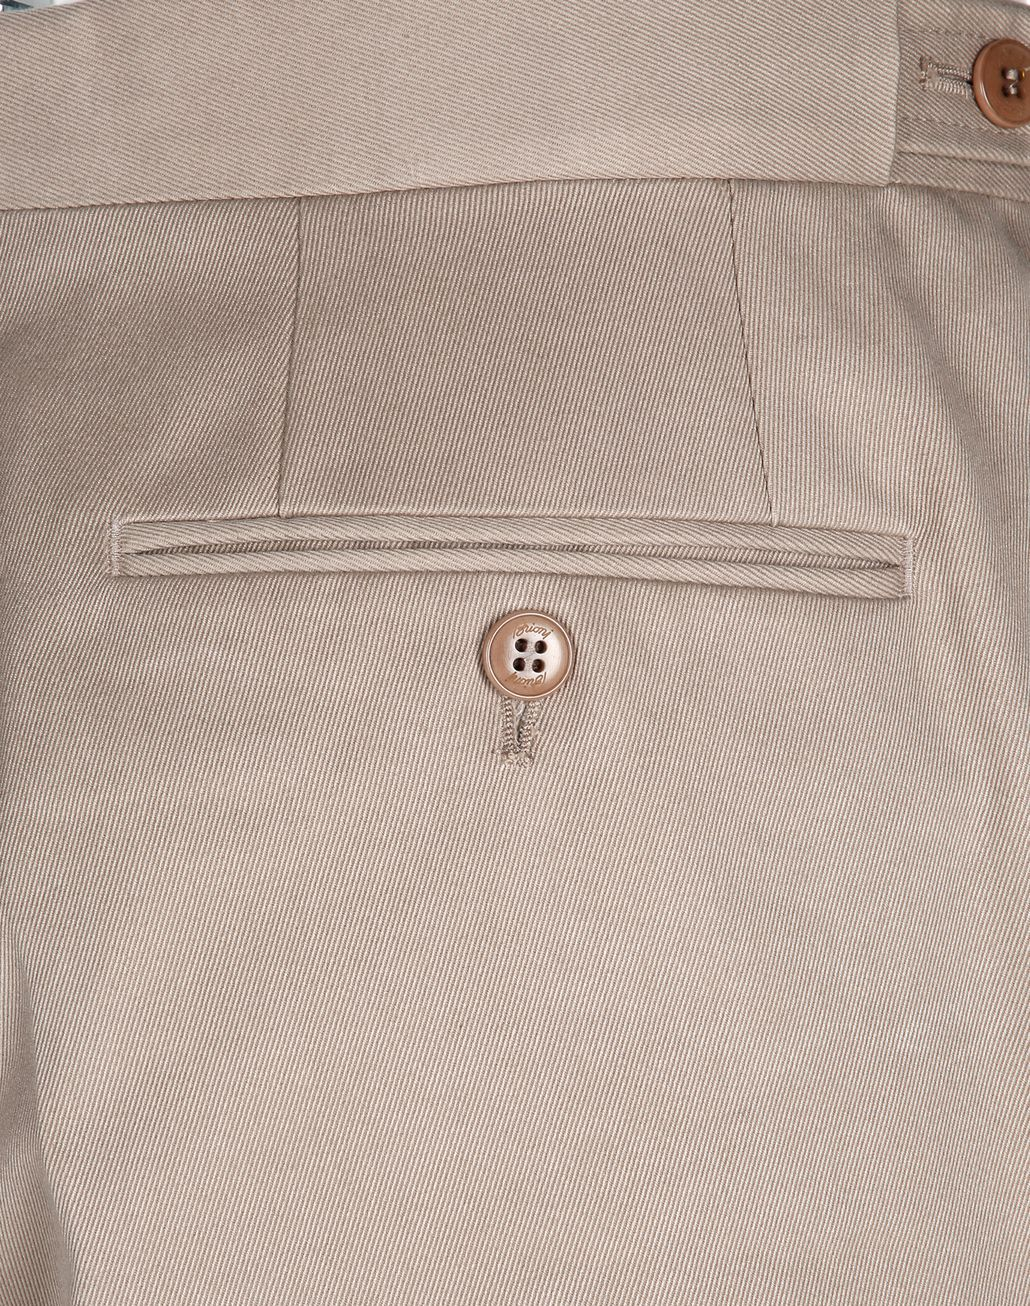 BRIONI Beige Chino Trousers   Trousers [*** pickupInStoreShippingNotGuaranteed_info ***] e